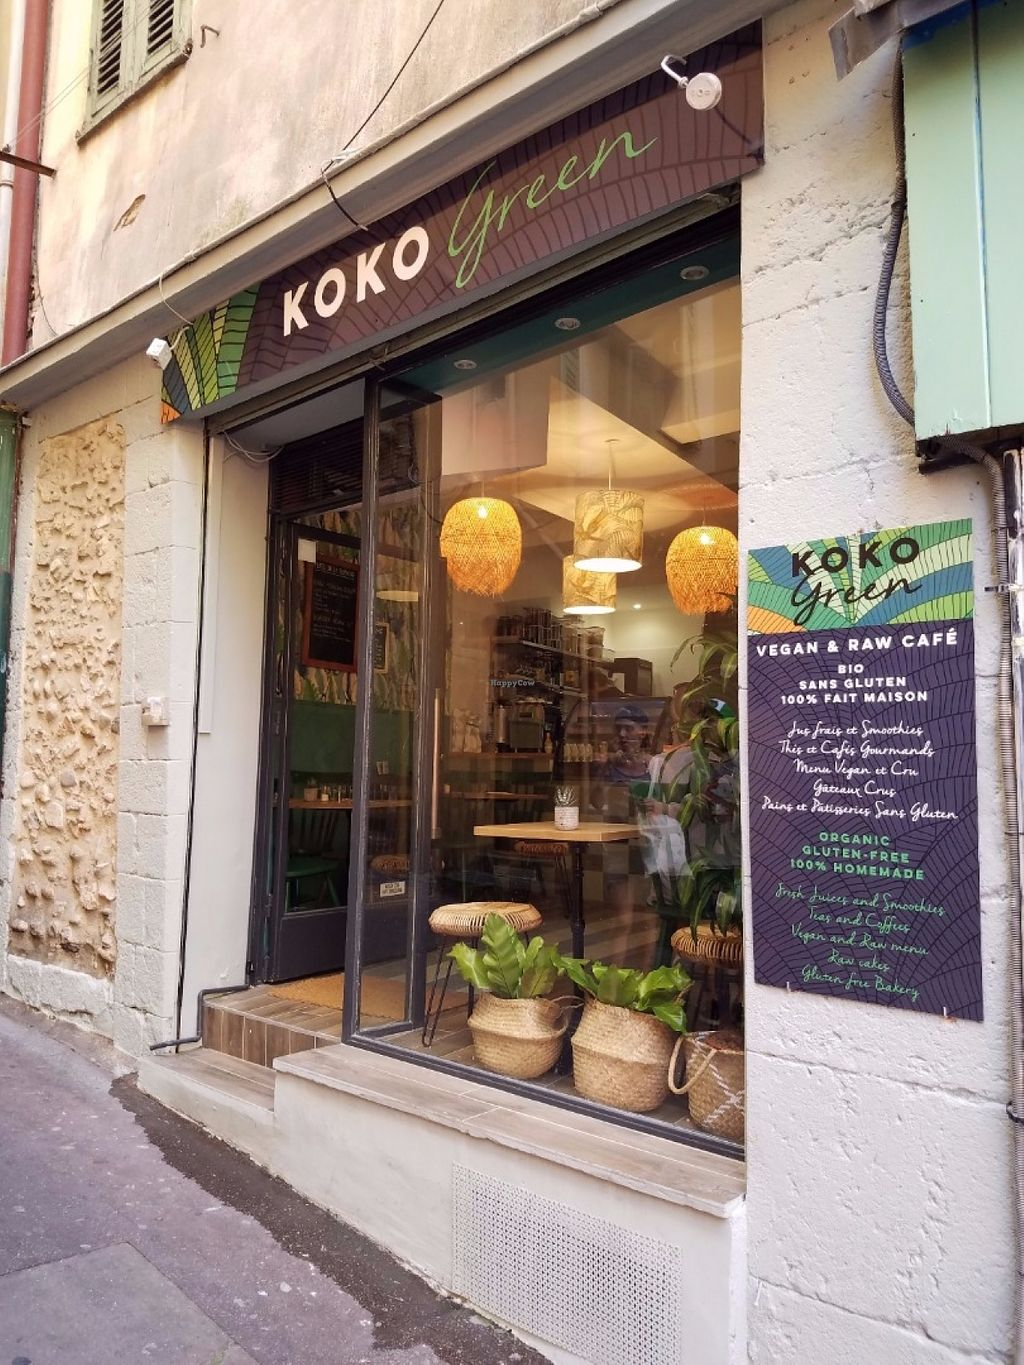 """Photo of KOKO Green  by <a href=""""/members/profile/KarimKanfoudi"""">KarimKanfoudi</a> <br/>Outside KoKo Green <br/> June 27, 2016  - <a href='/contact/abuse/image/75042/156371'>Report</a>"""